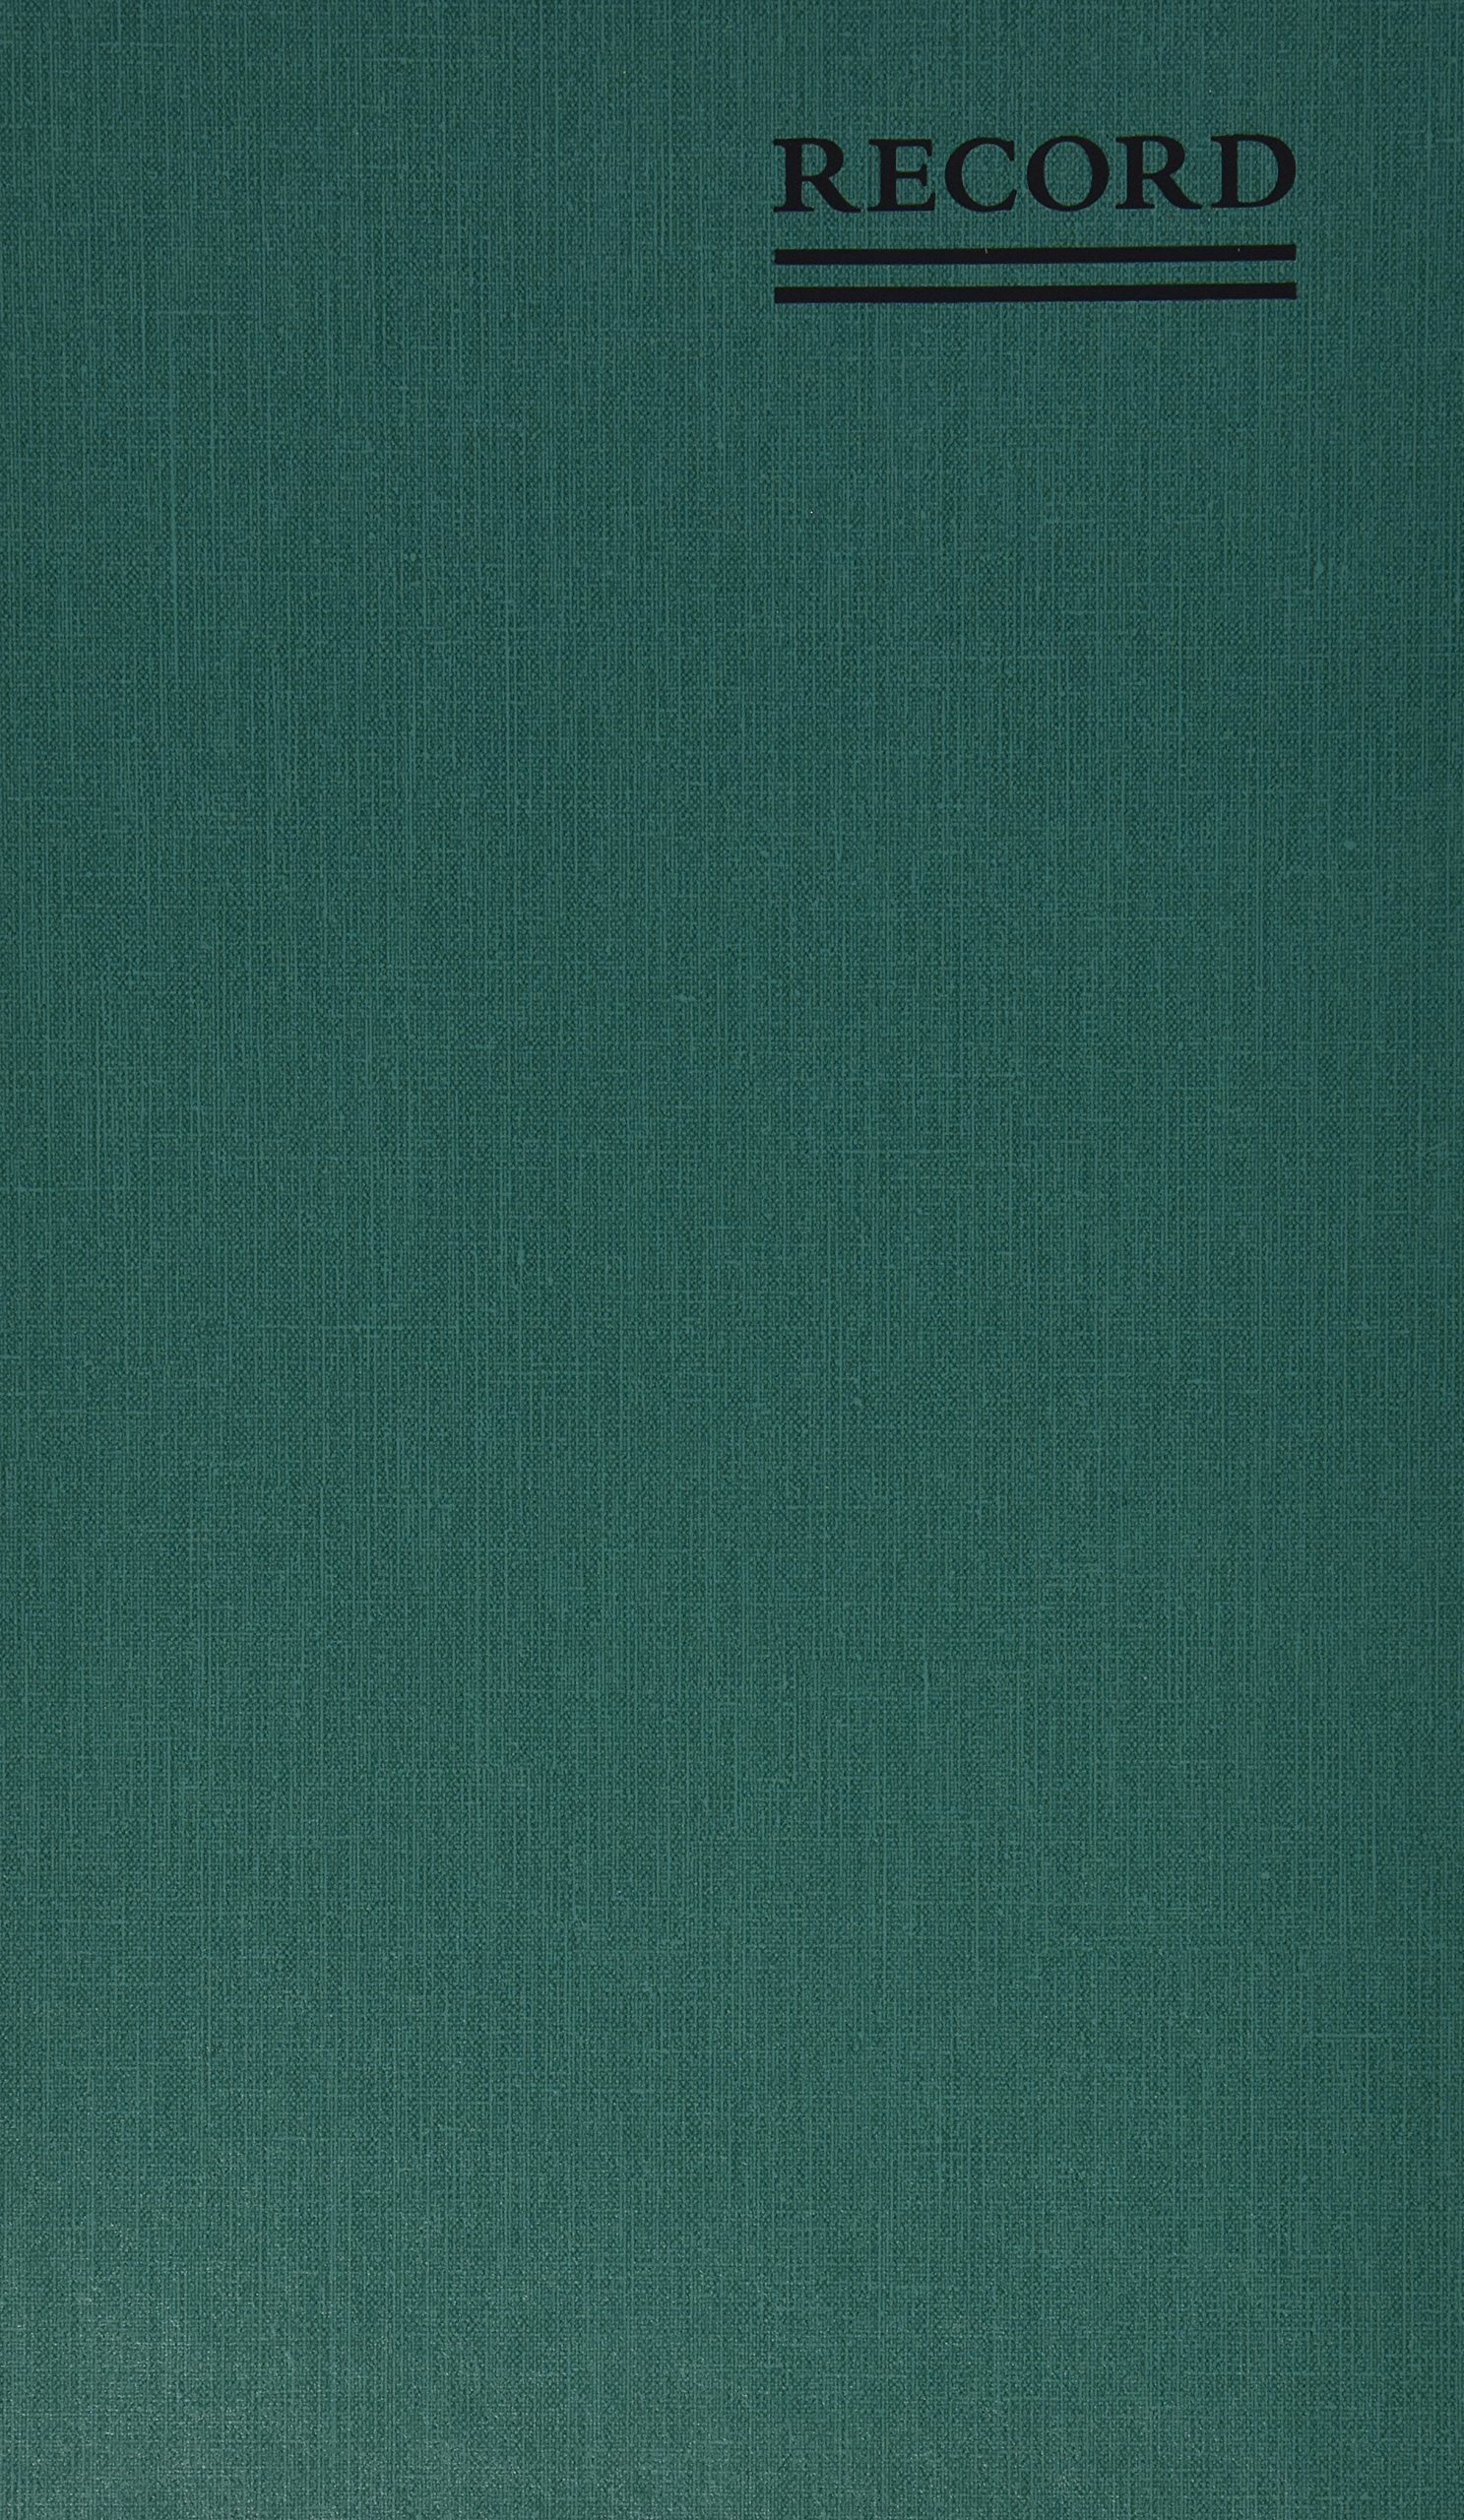 NATIONAL Emerald Series Record Book, Green Canvas Cover, 500 Pages, 12.125'' x 7.5''  (56151) by NATIONAL